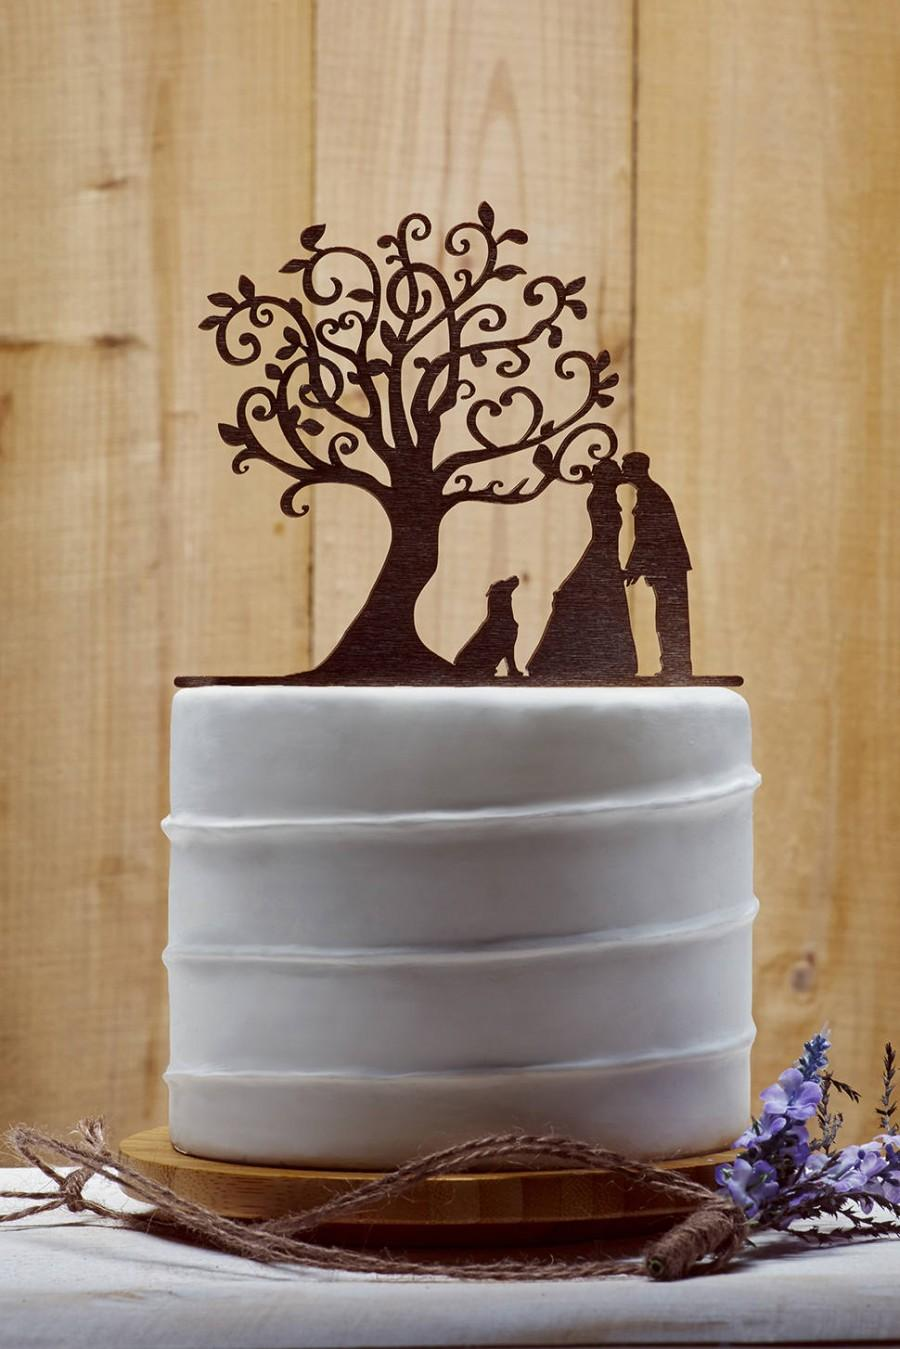 Hochzeit - Customized Wedding Cake Topper With Dog, Personalized Cake Topper for Wedding, Custom Personalized Wedding Cake Topper, Couple Cake Topper10